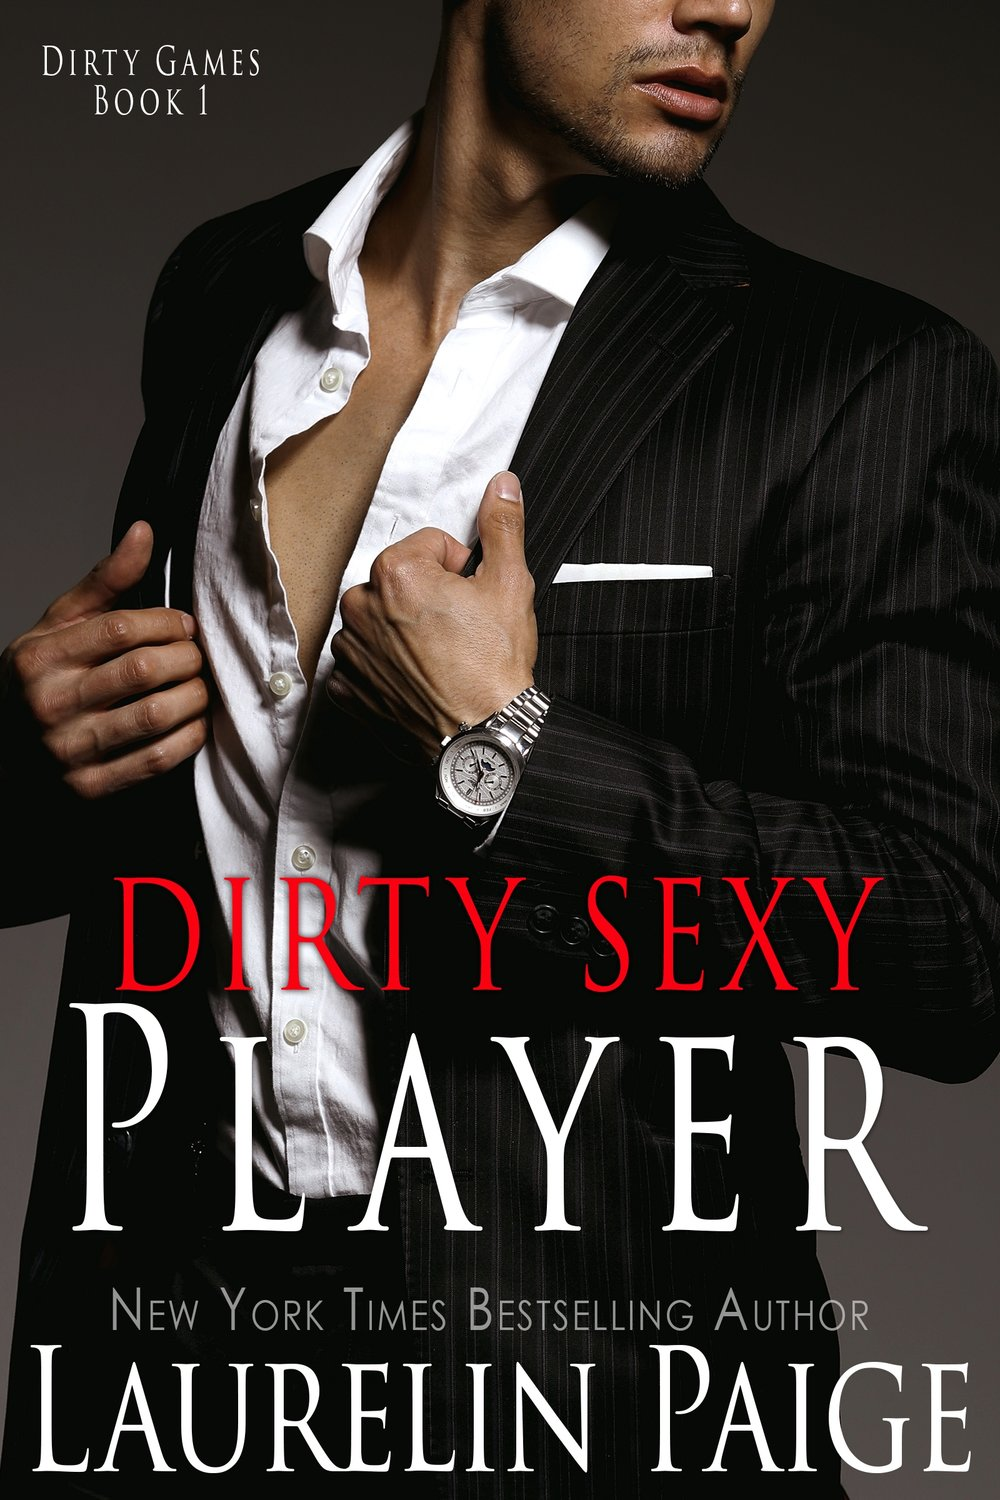 Dirty Sexy Player